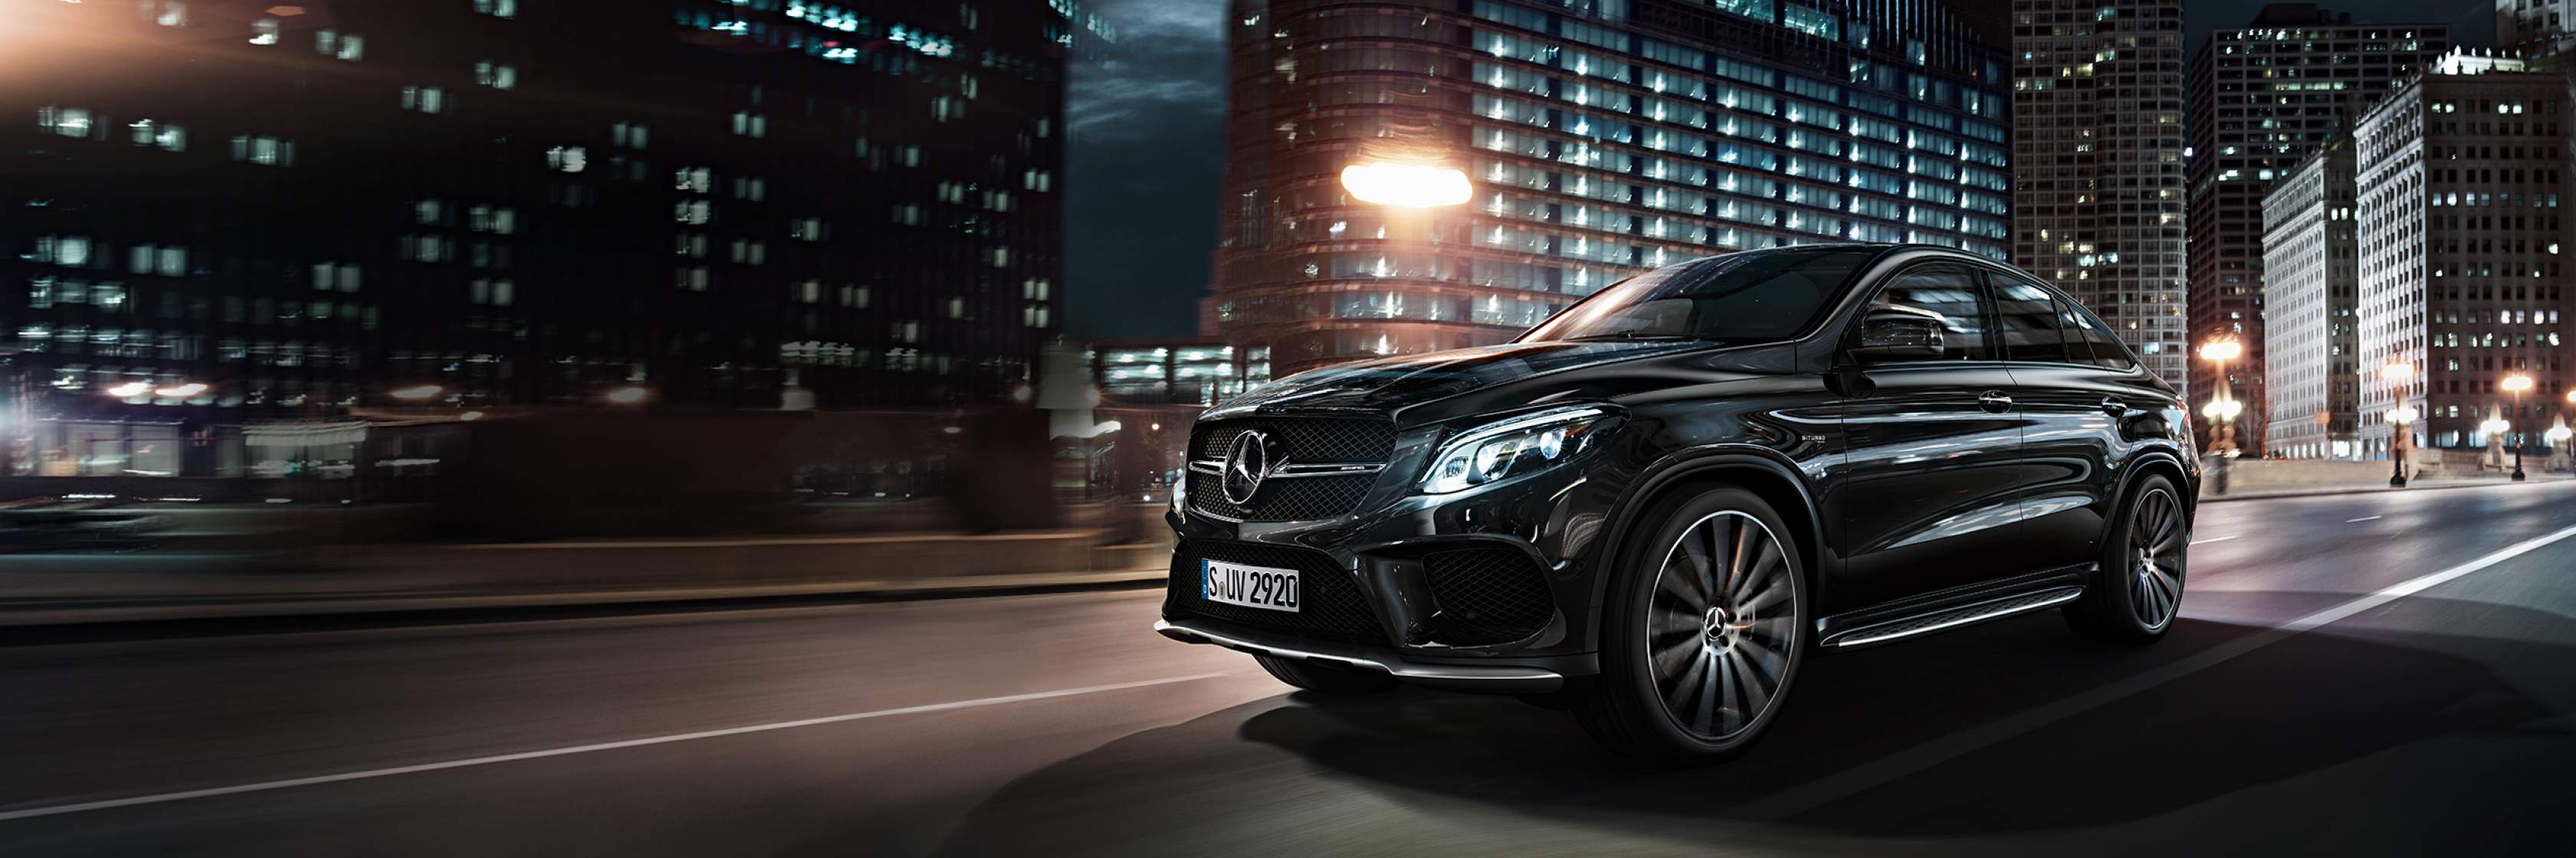 Ціна Mercedes–Benz GLE Coupe